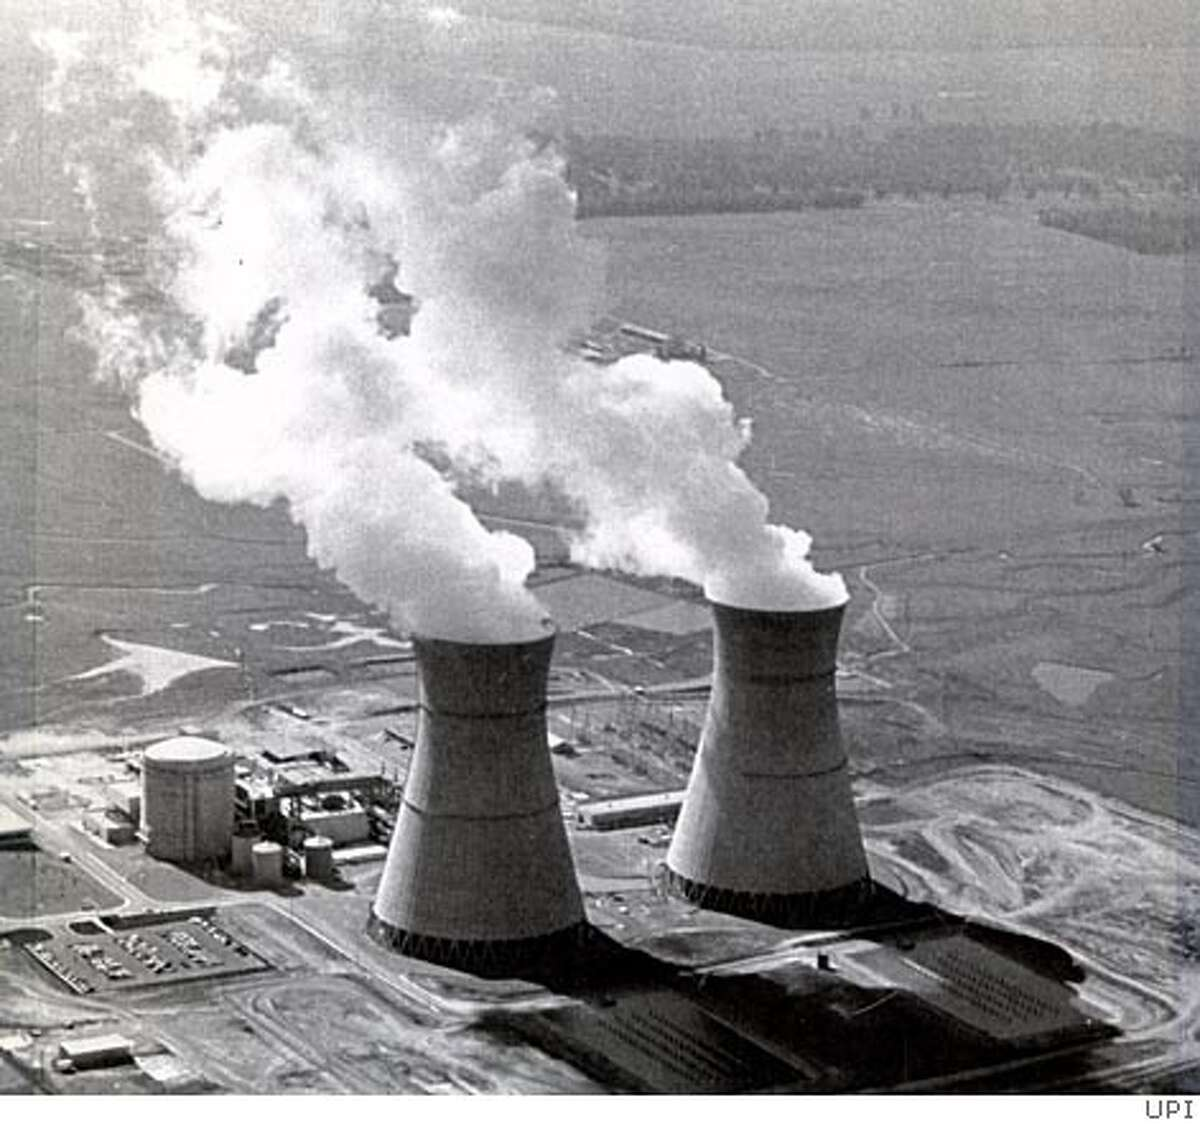 Sacramento -- A boiler room explosion in a non-nuclear area of the Rancho Seco nuclear power plant injured two utility workers June 12, 1984. Plant officials said the injured were burned by the explosion of non-nuclear steam, which contained caustic material.